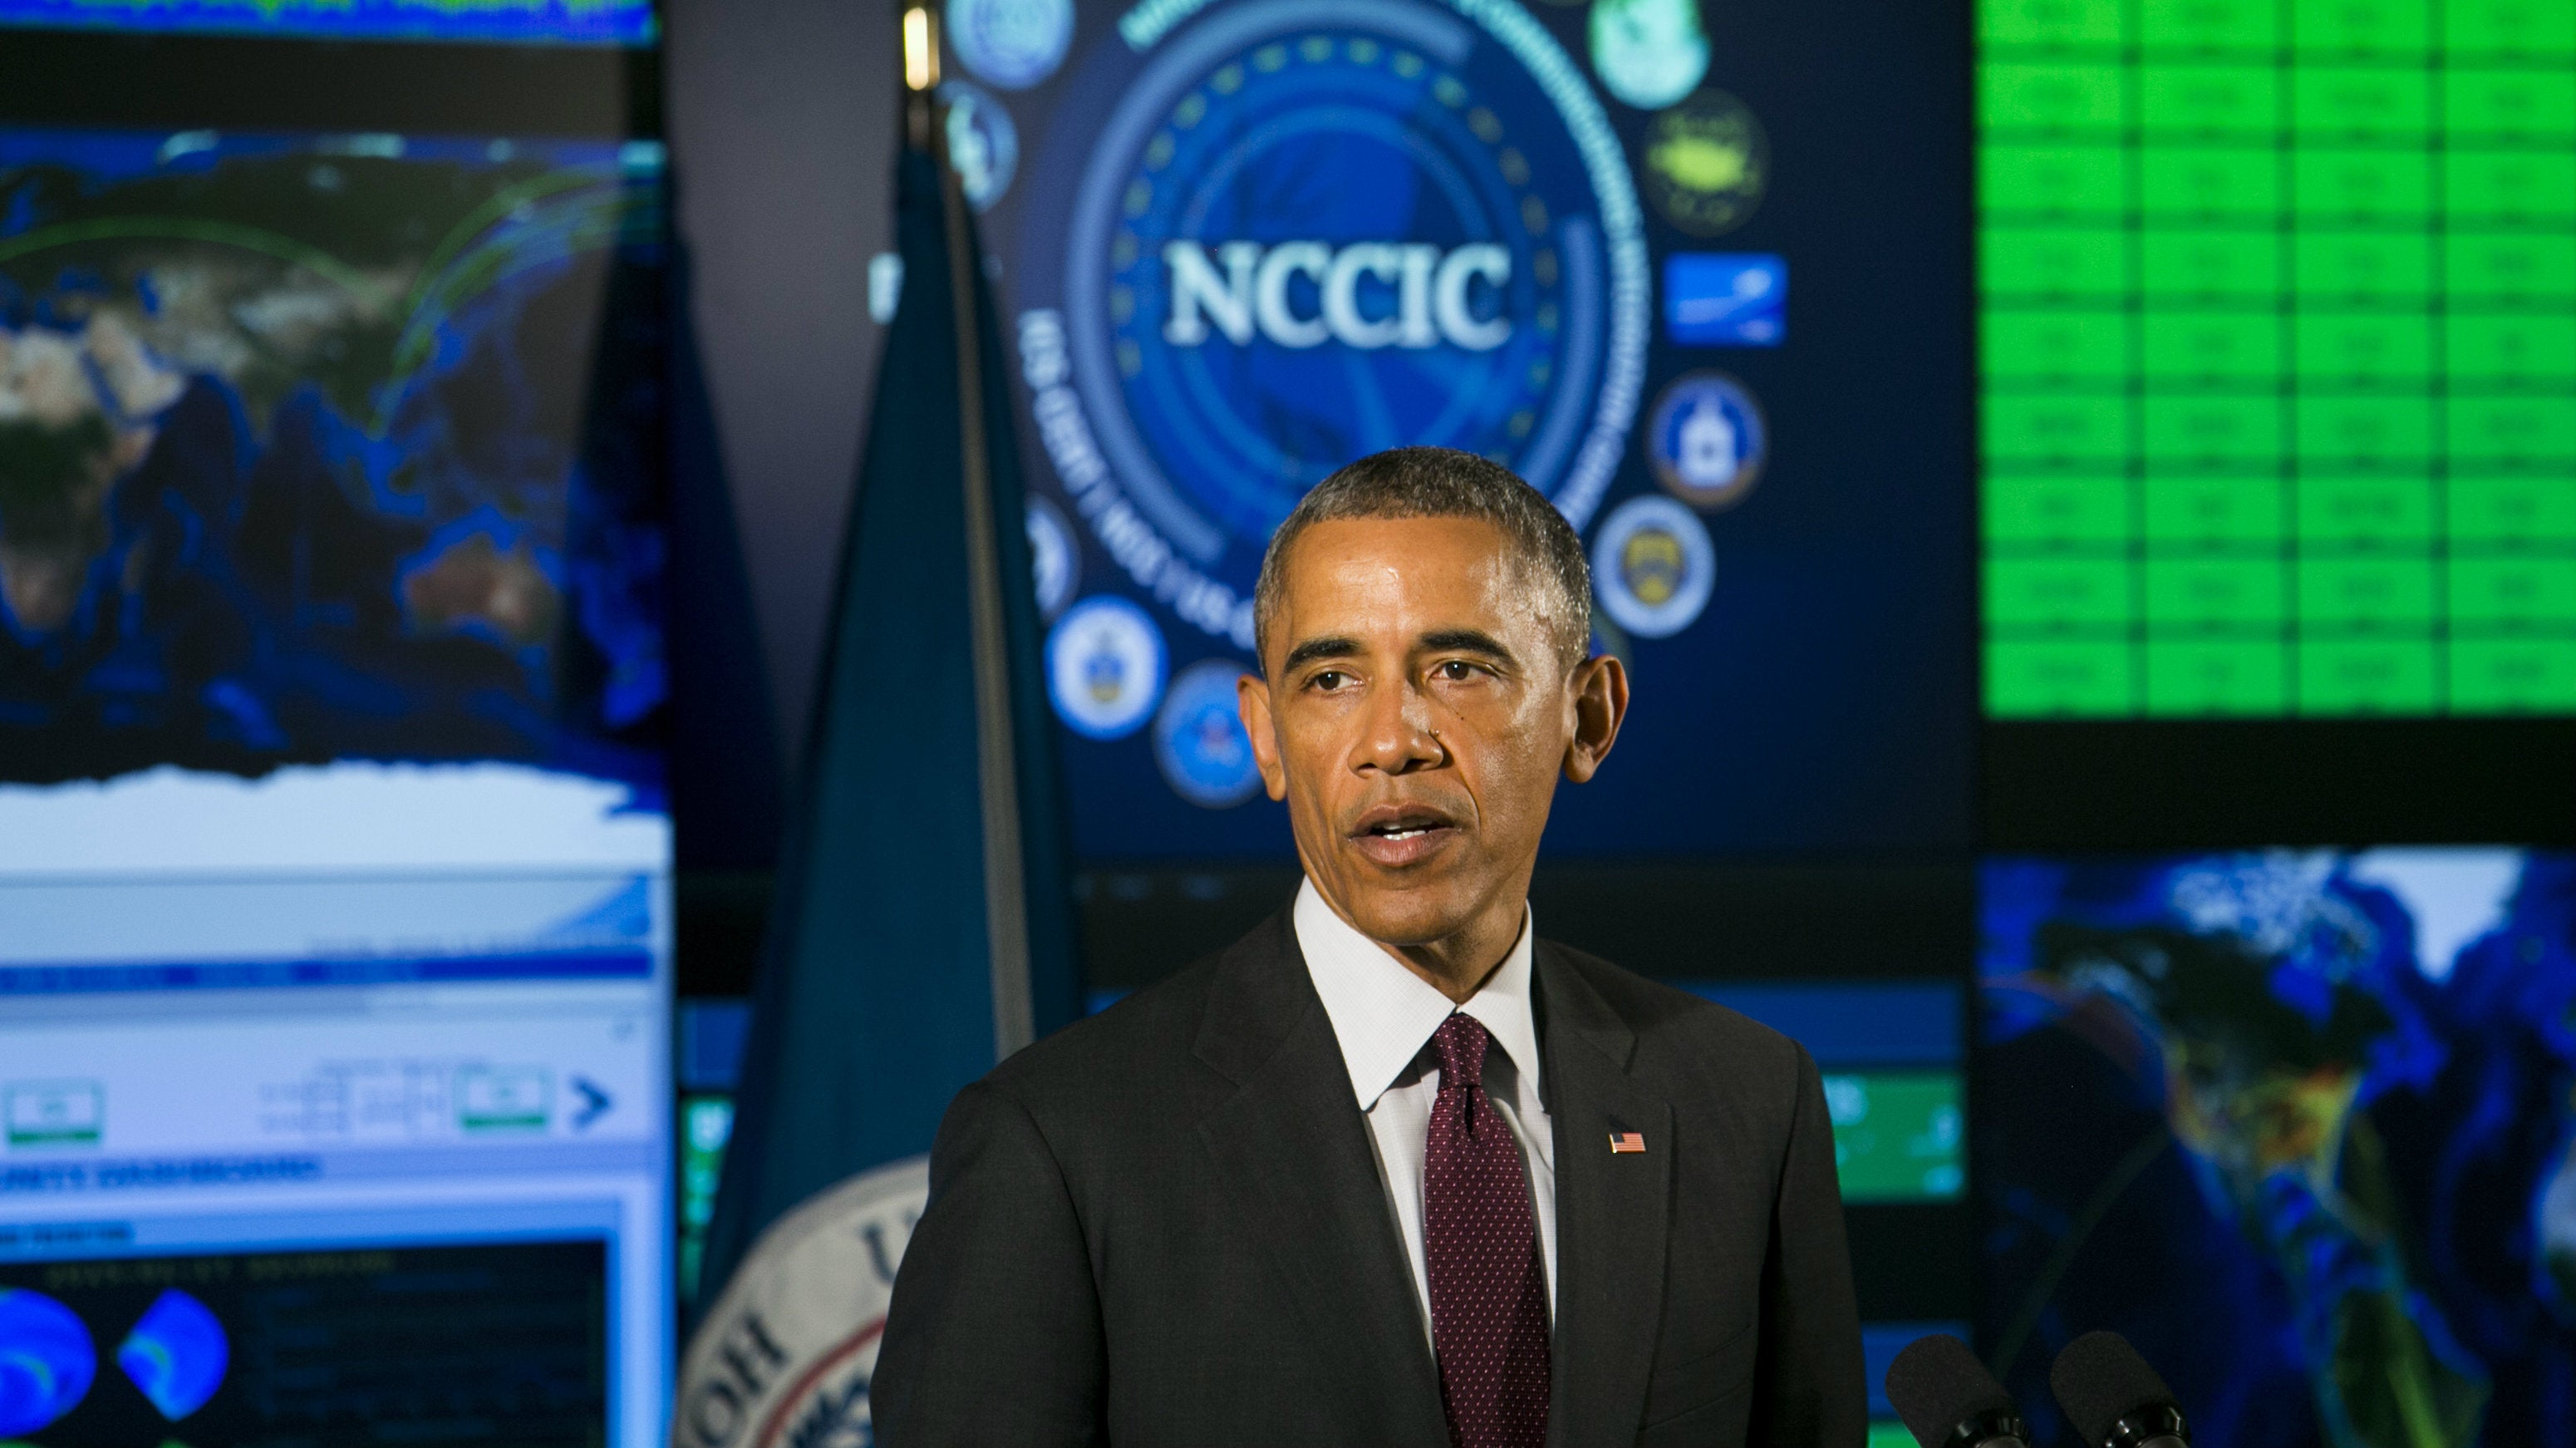 United States issues directive on government response to major hacks